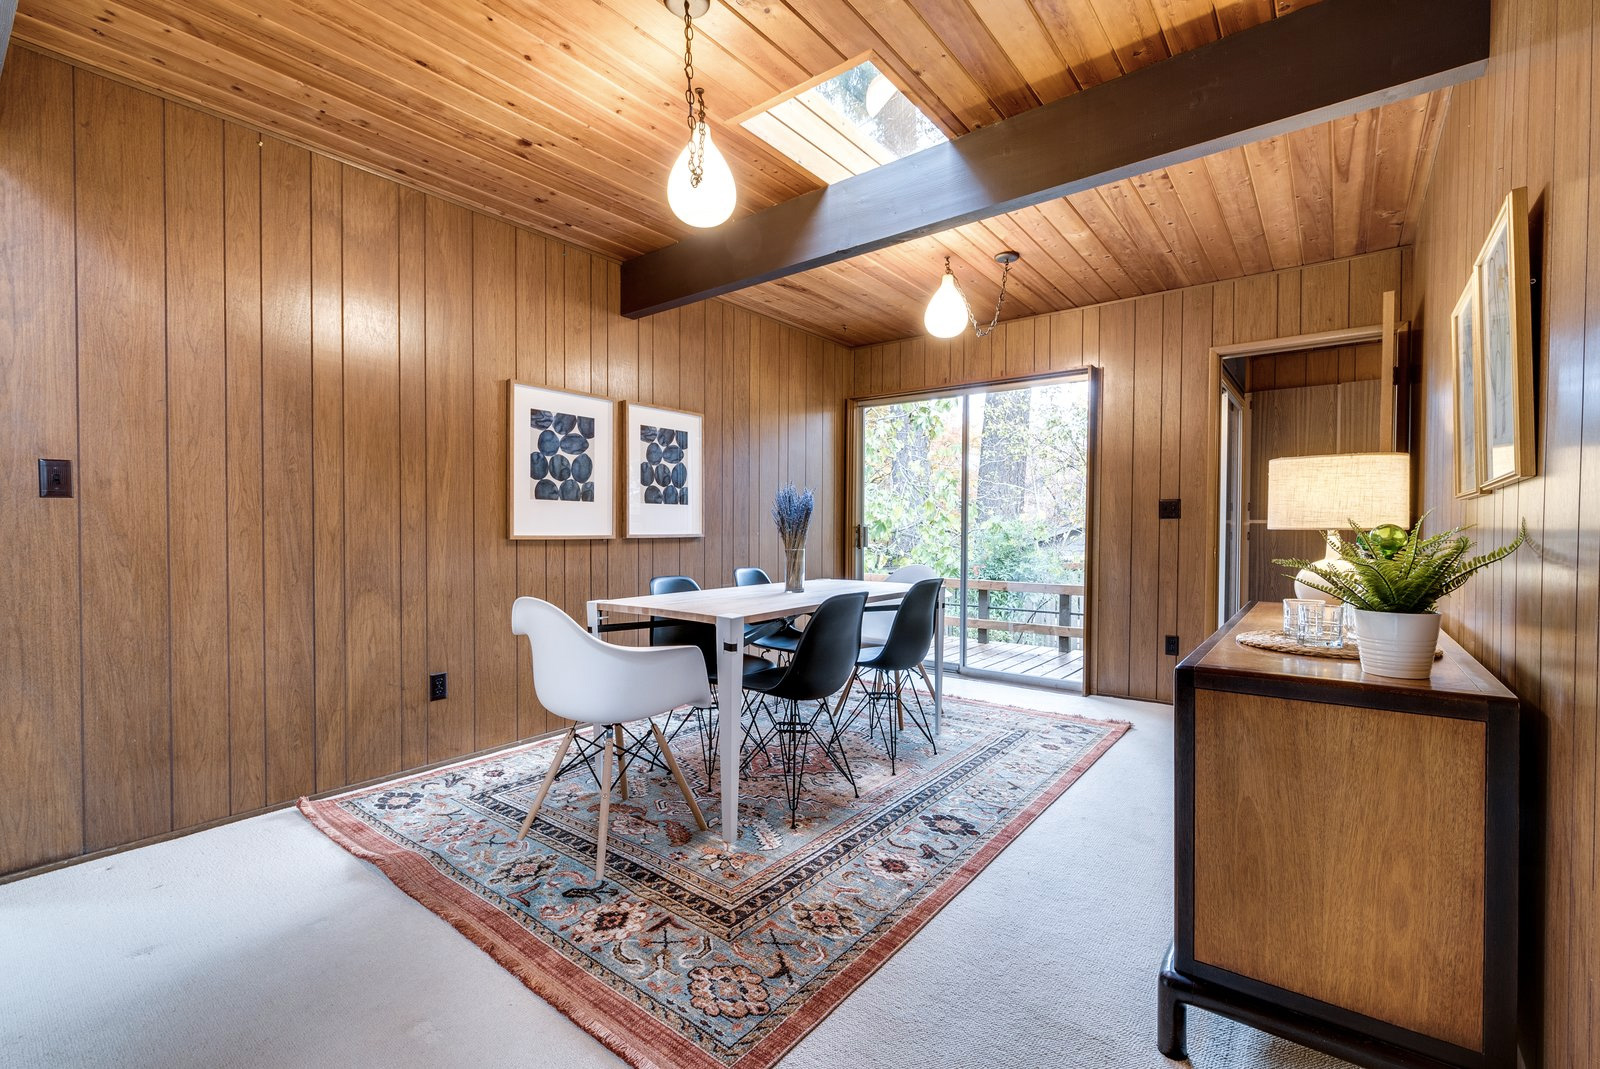 Post and beam with huge atrium lists for $700k near Portland